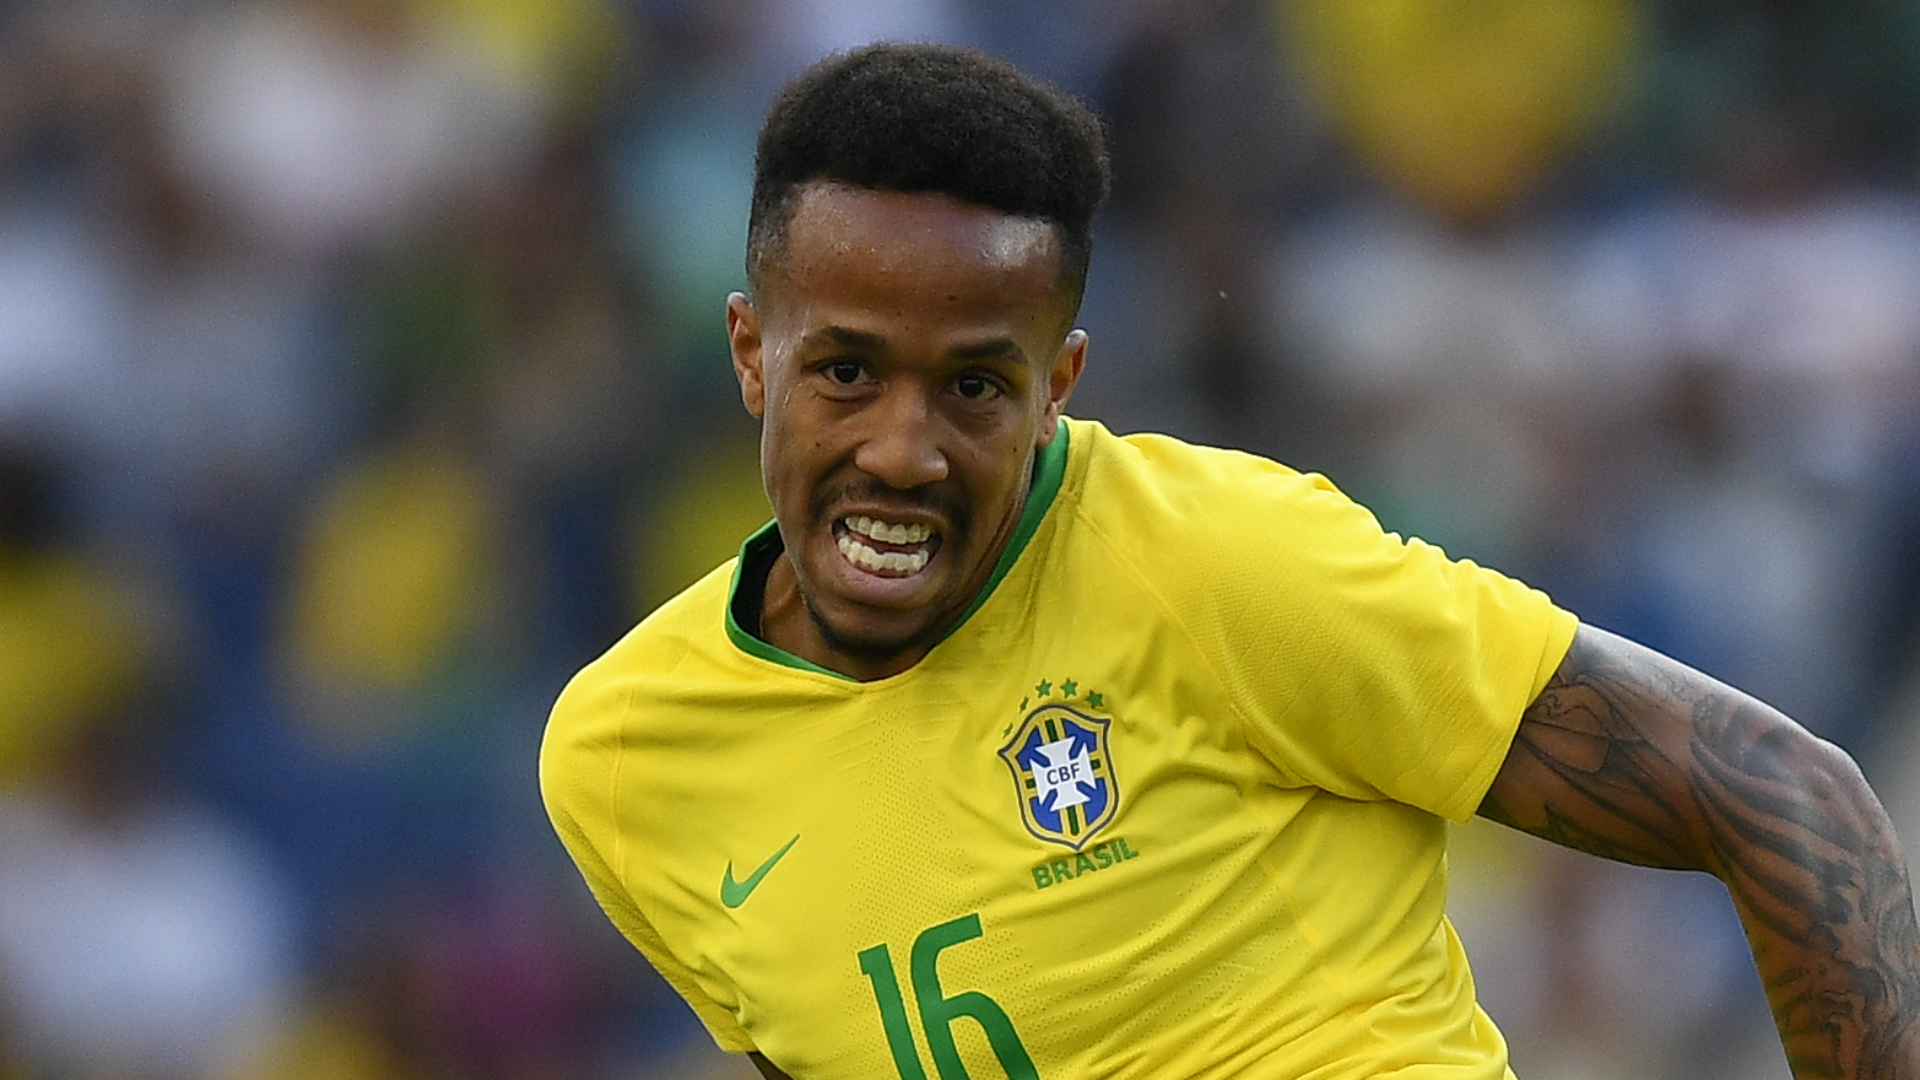 Militao out to 'make history' with Real Madrid